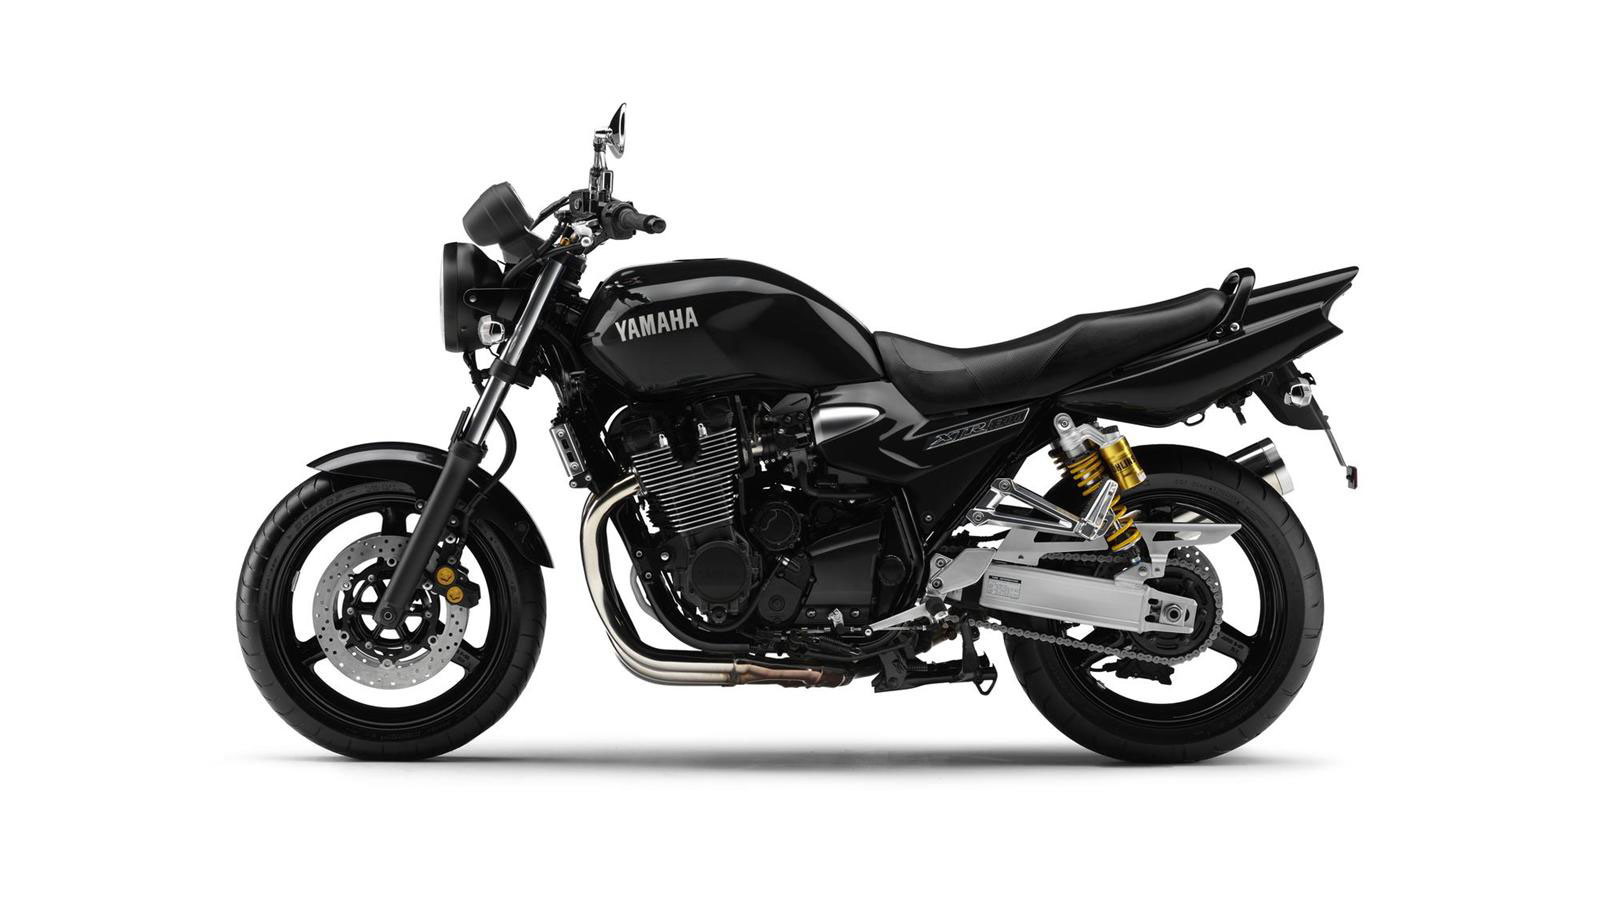 2013 yamaha xjr1300 review for Yamaha 1300 motorcycle